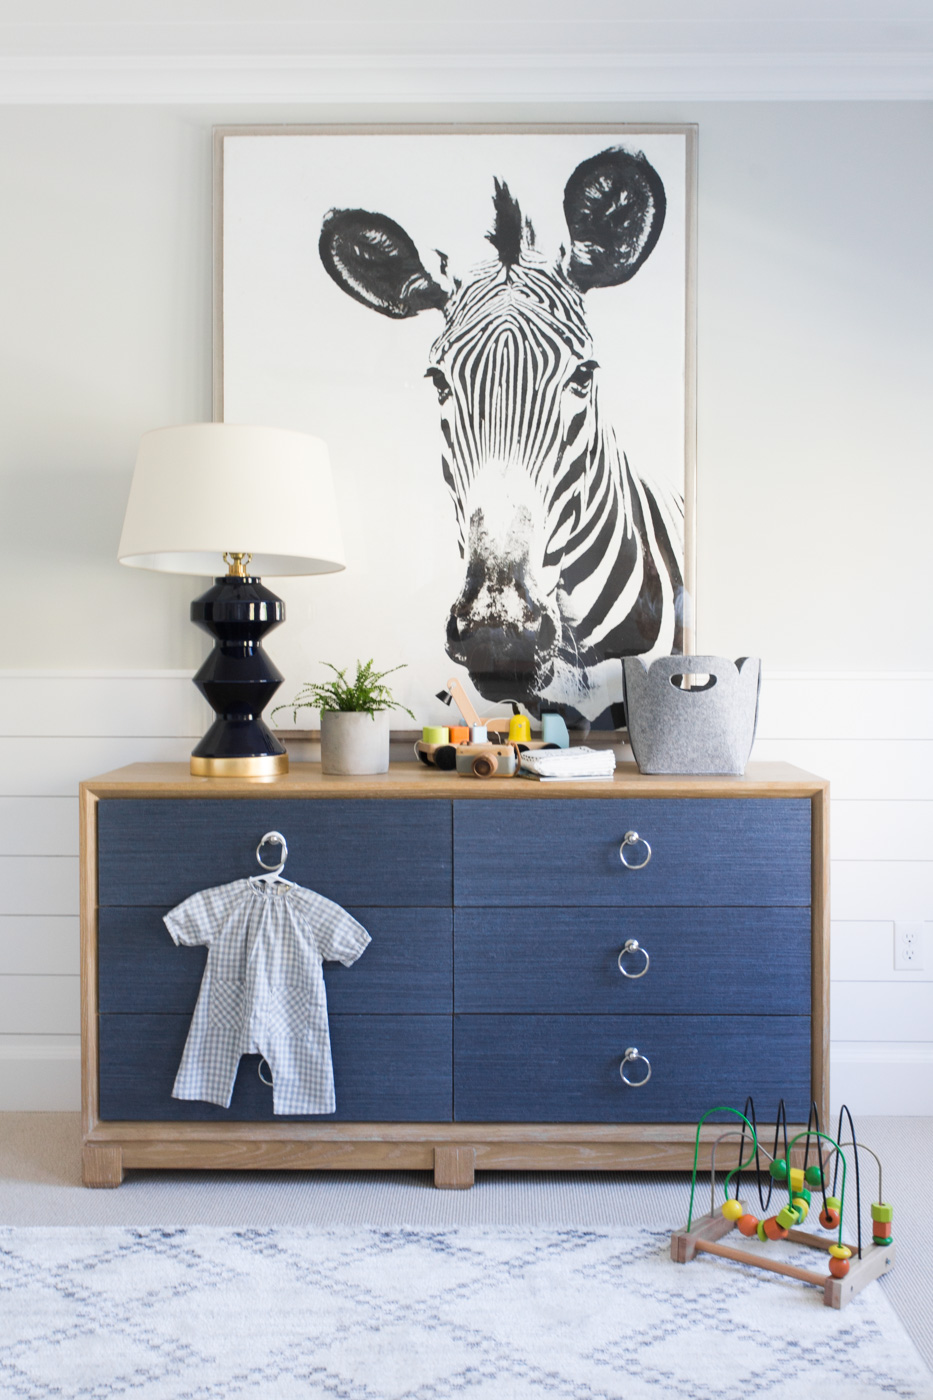 Zebra artwork above blue dresser